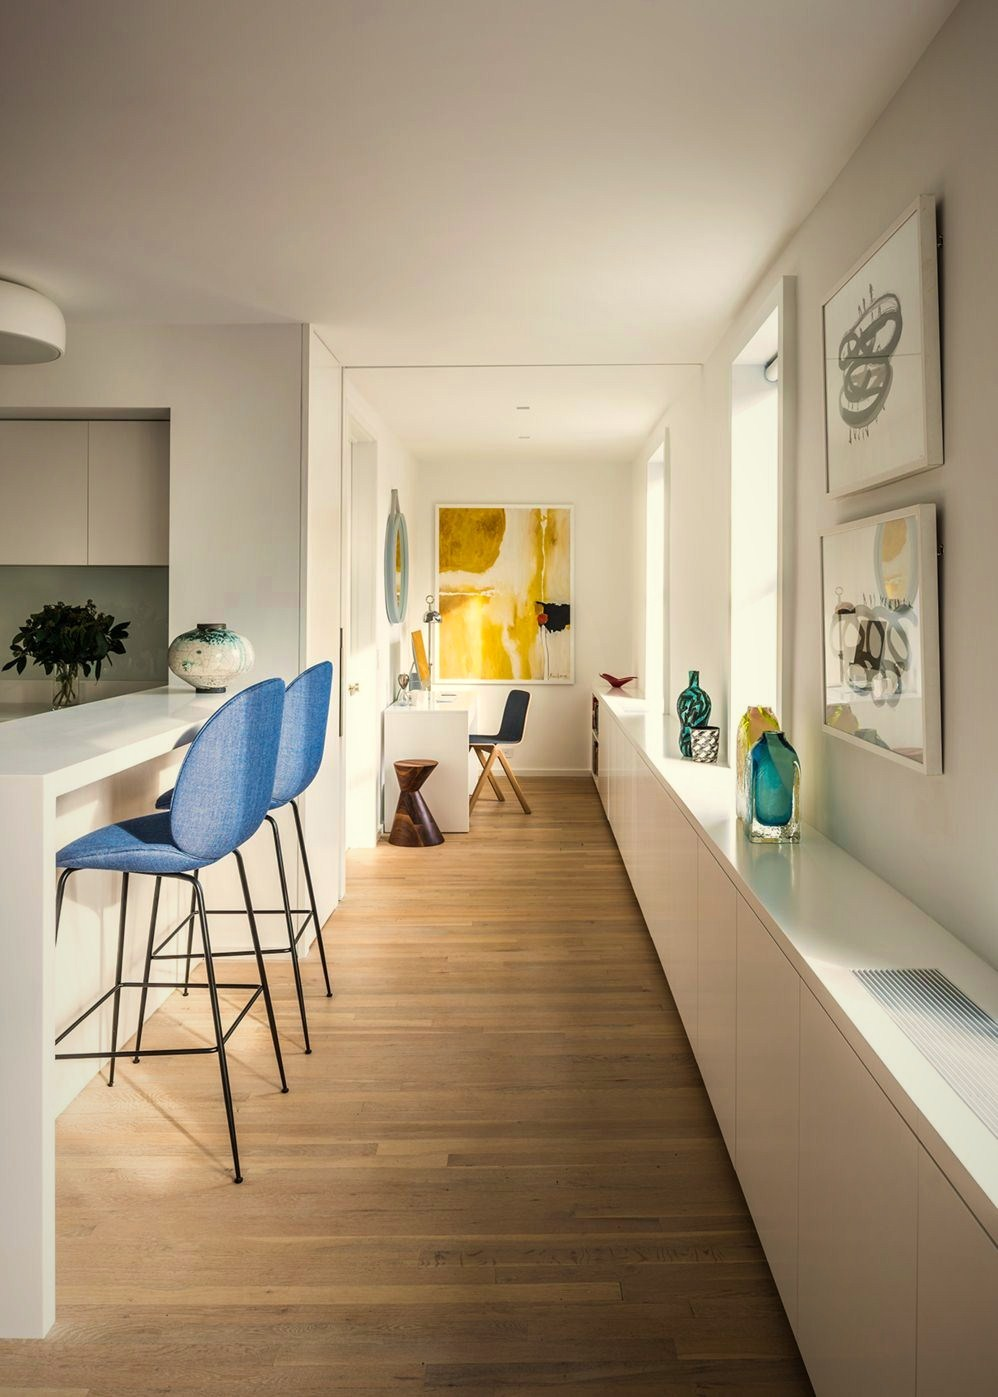 https://elonahome.com/wp-content/uploads/2020/12/Casual-apartment-transformation-enhancing-a-West-Village-dwelling-with-soft-palette-coloring-and-flawless-interior-detailing-2.jpg